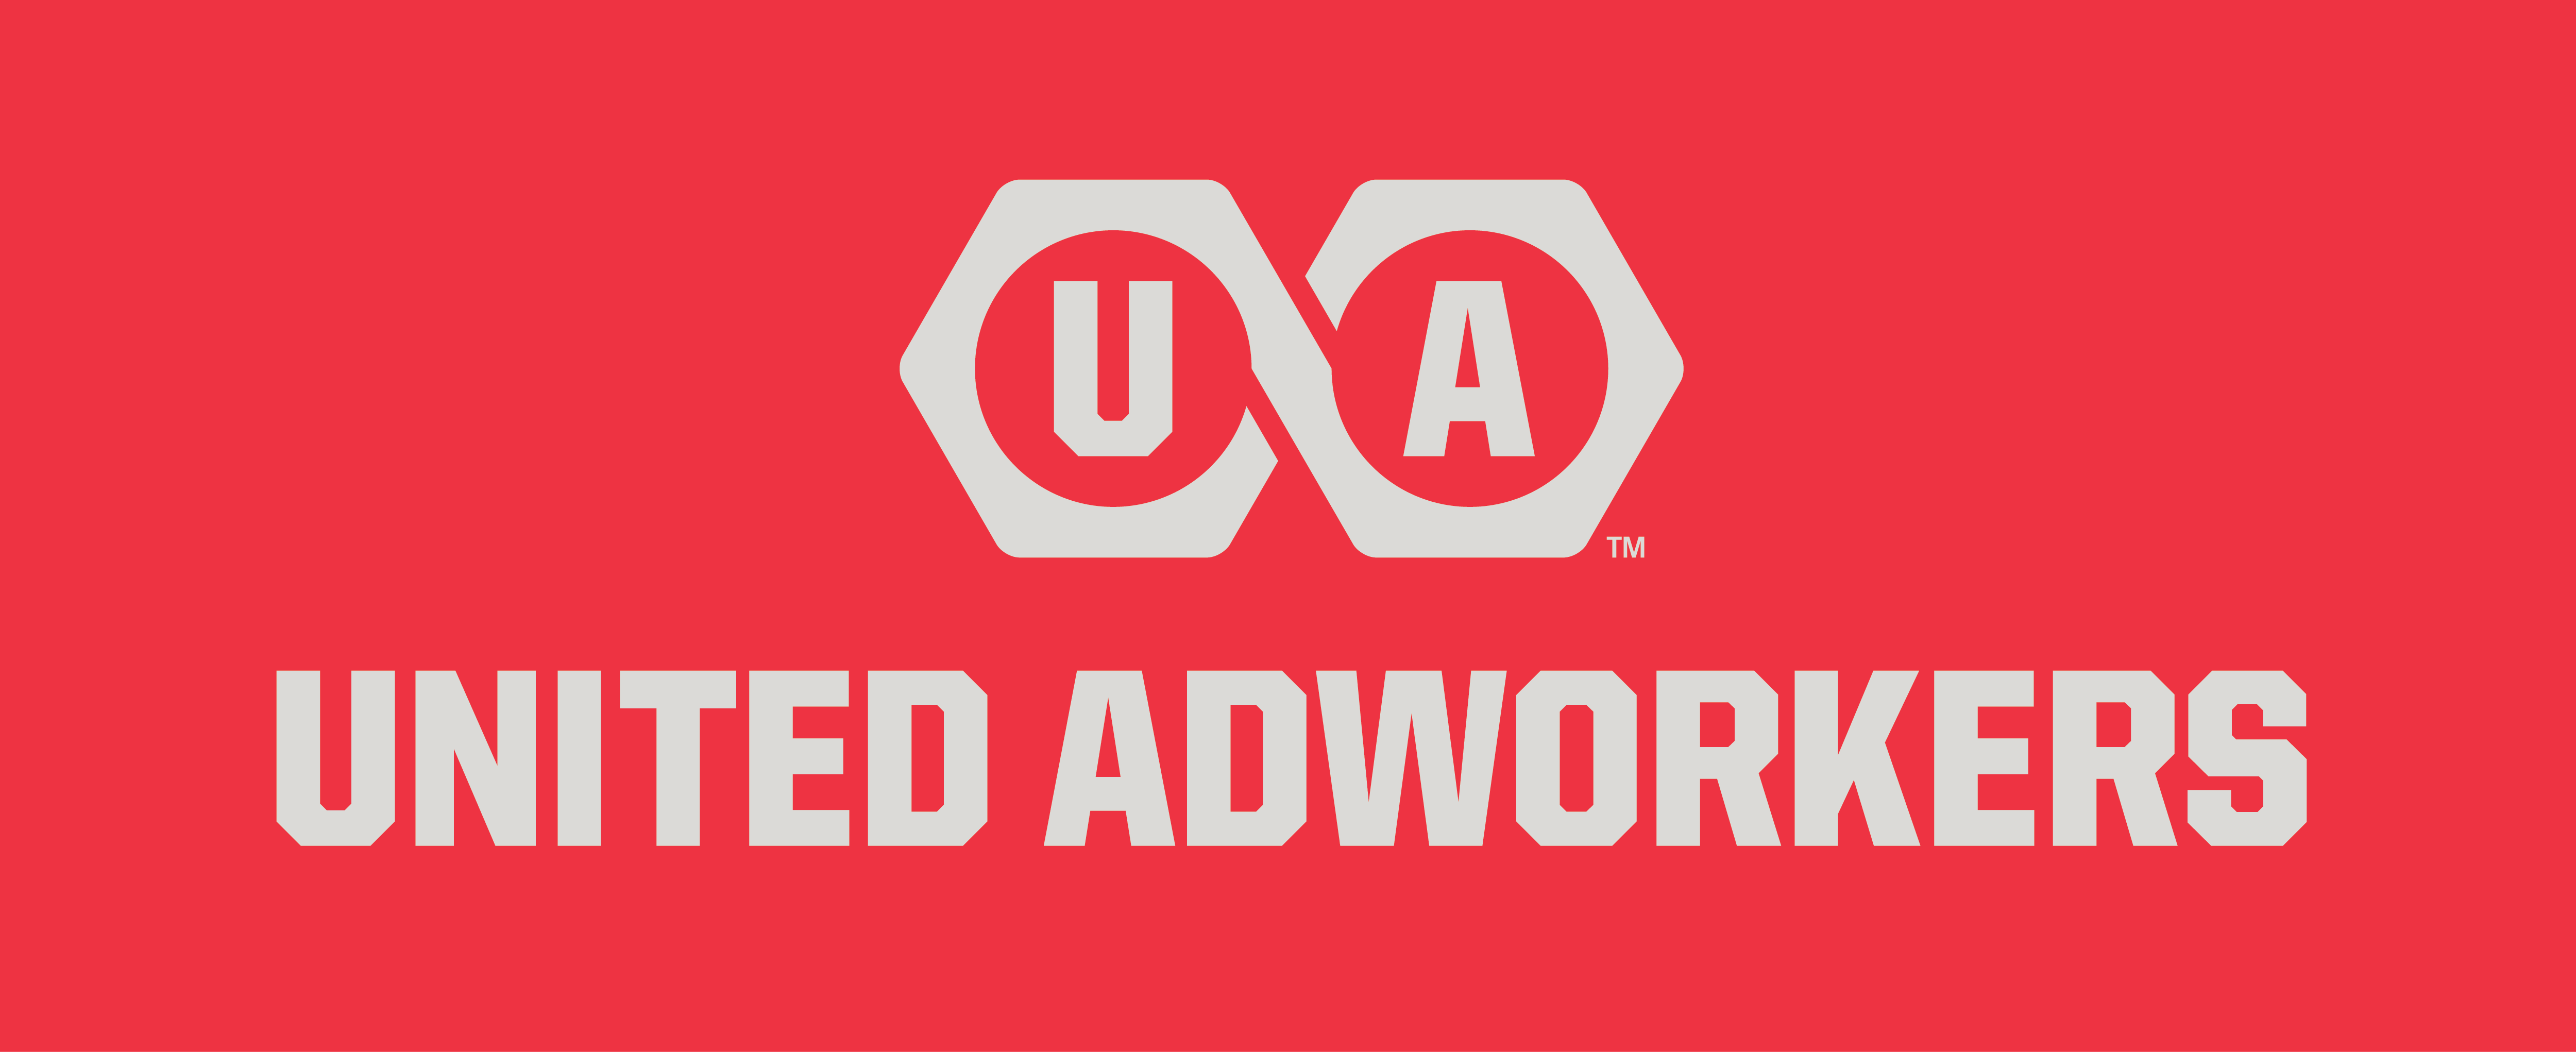 United Adworkers banner